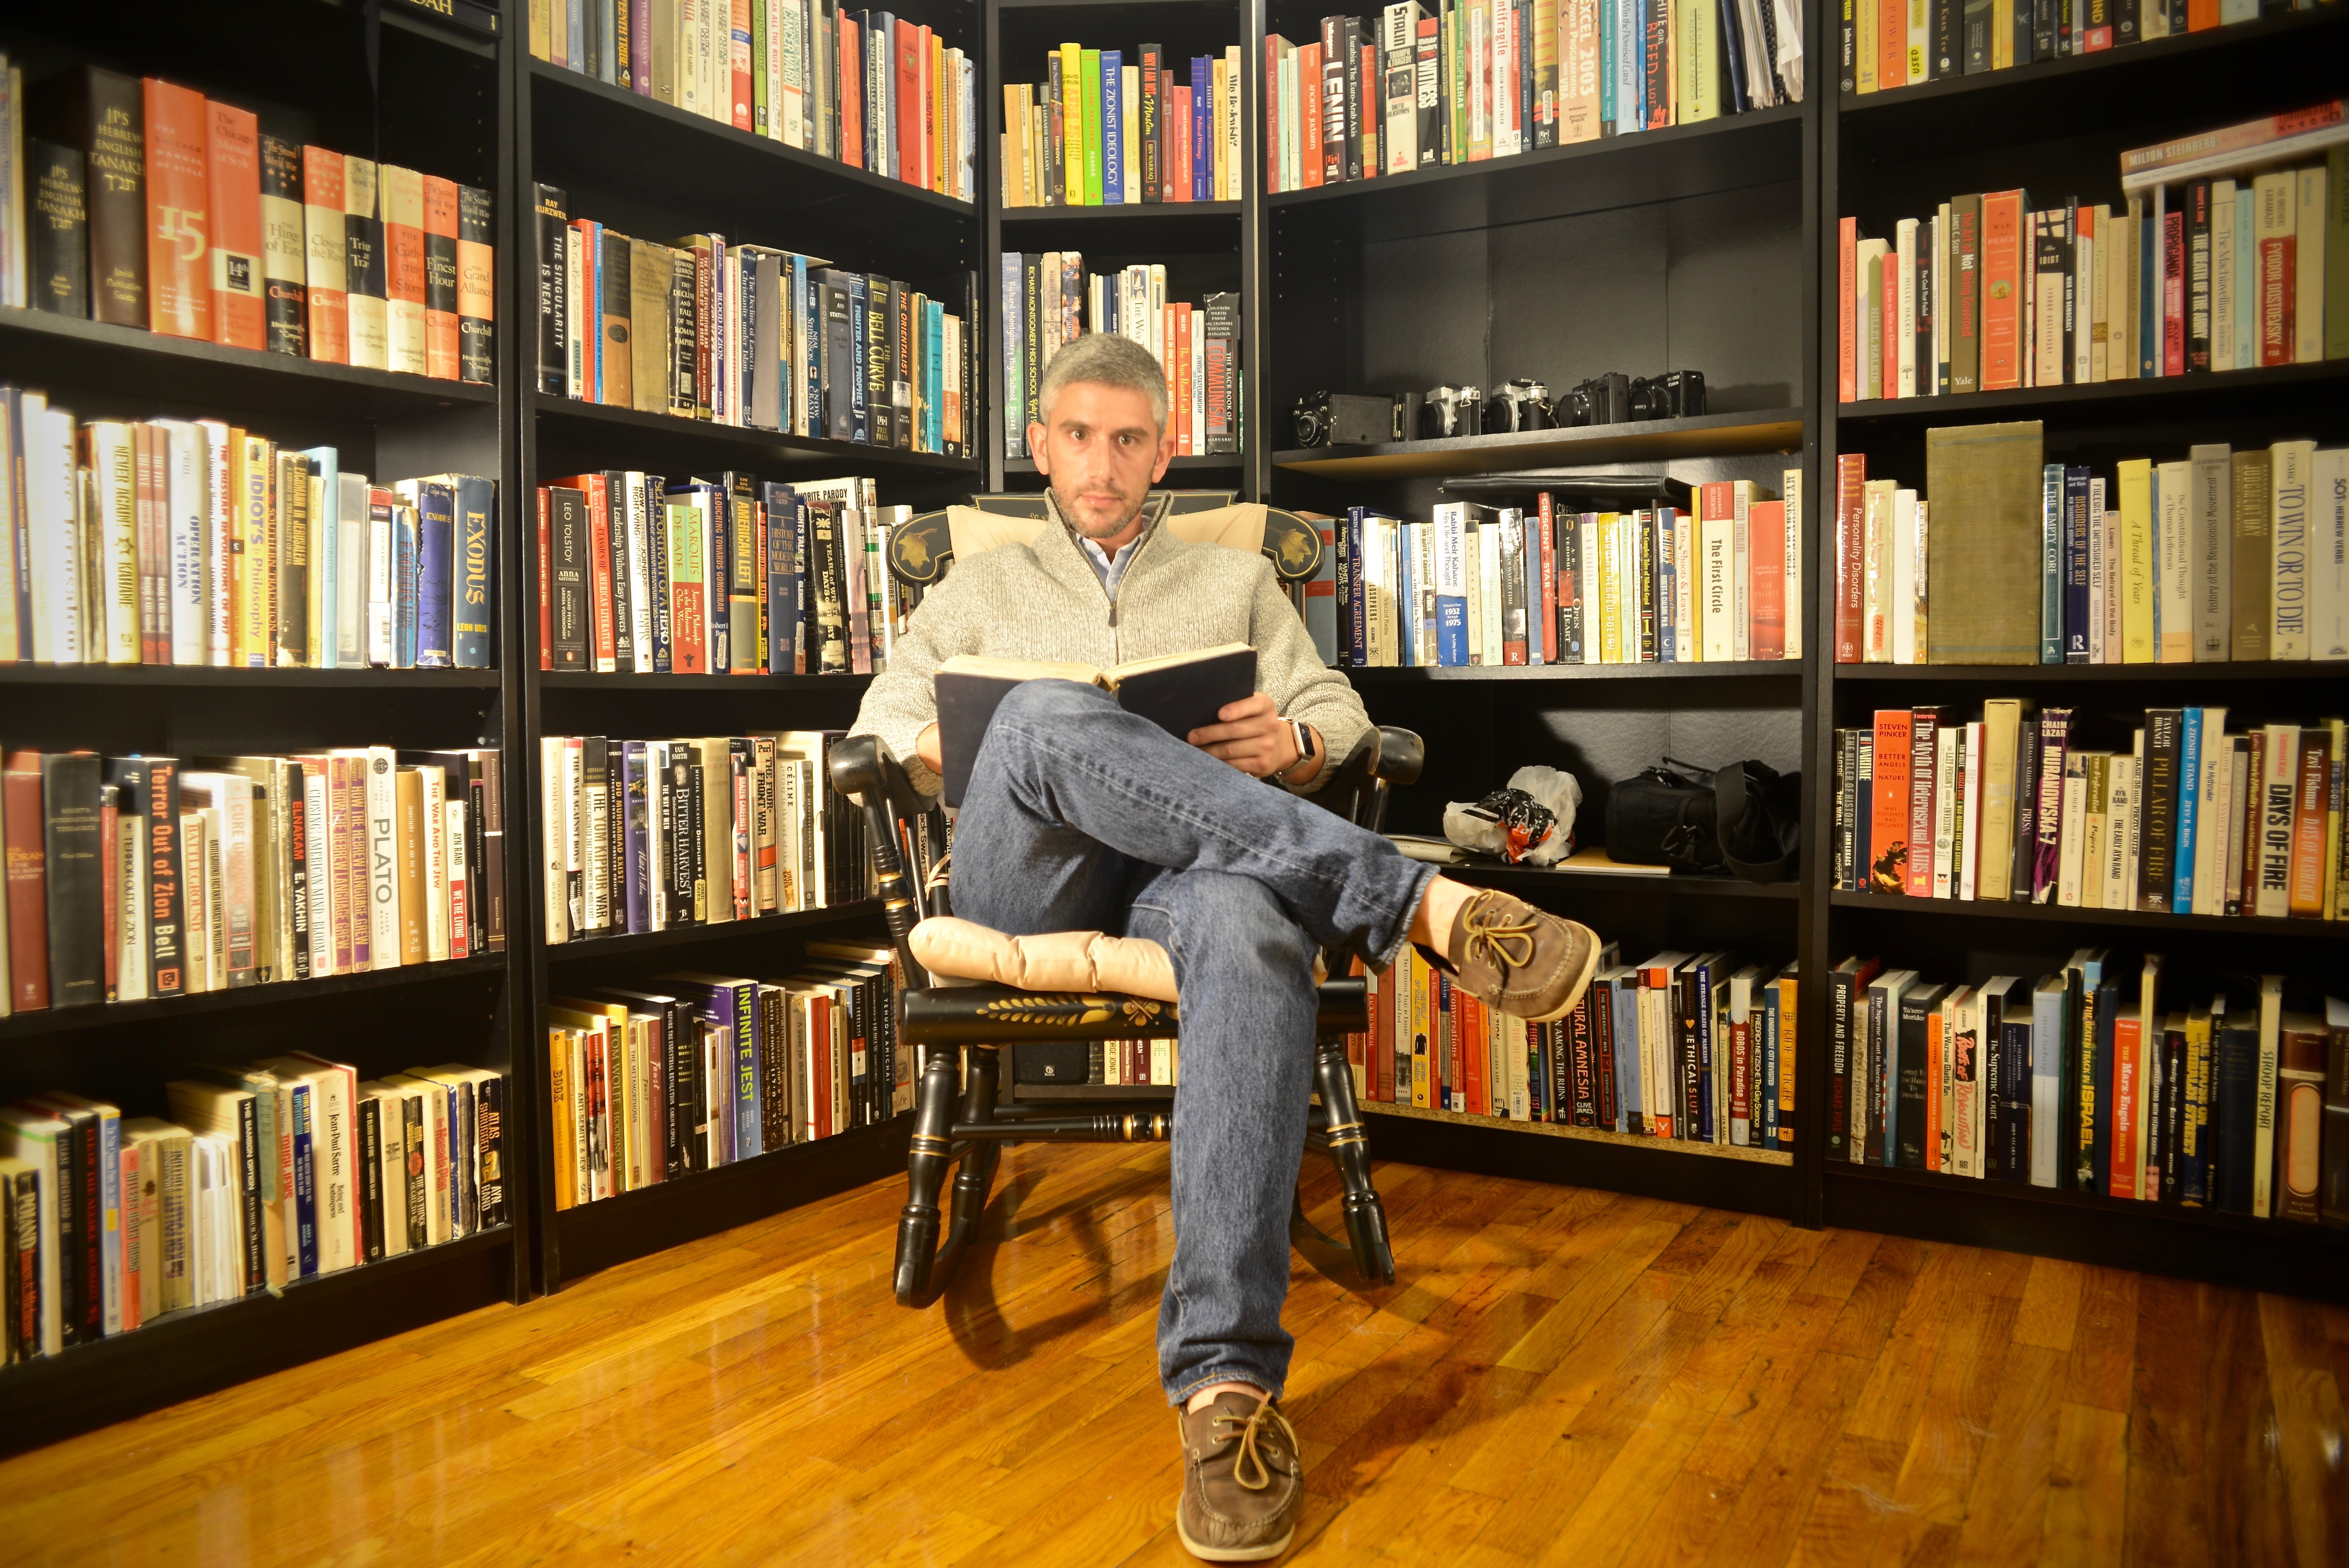 Natan Gesher in his grandfather's rocking chair, September 2016